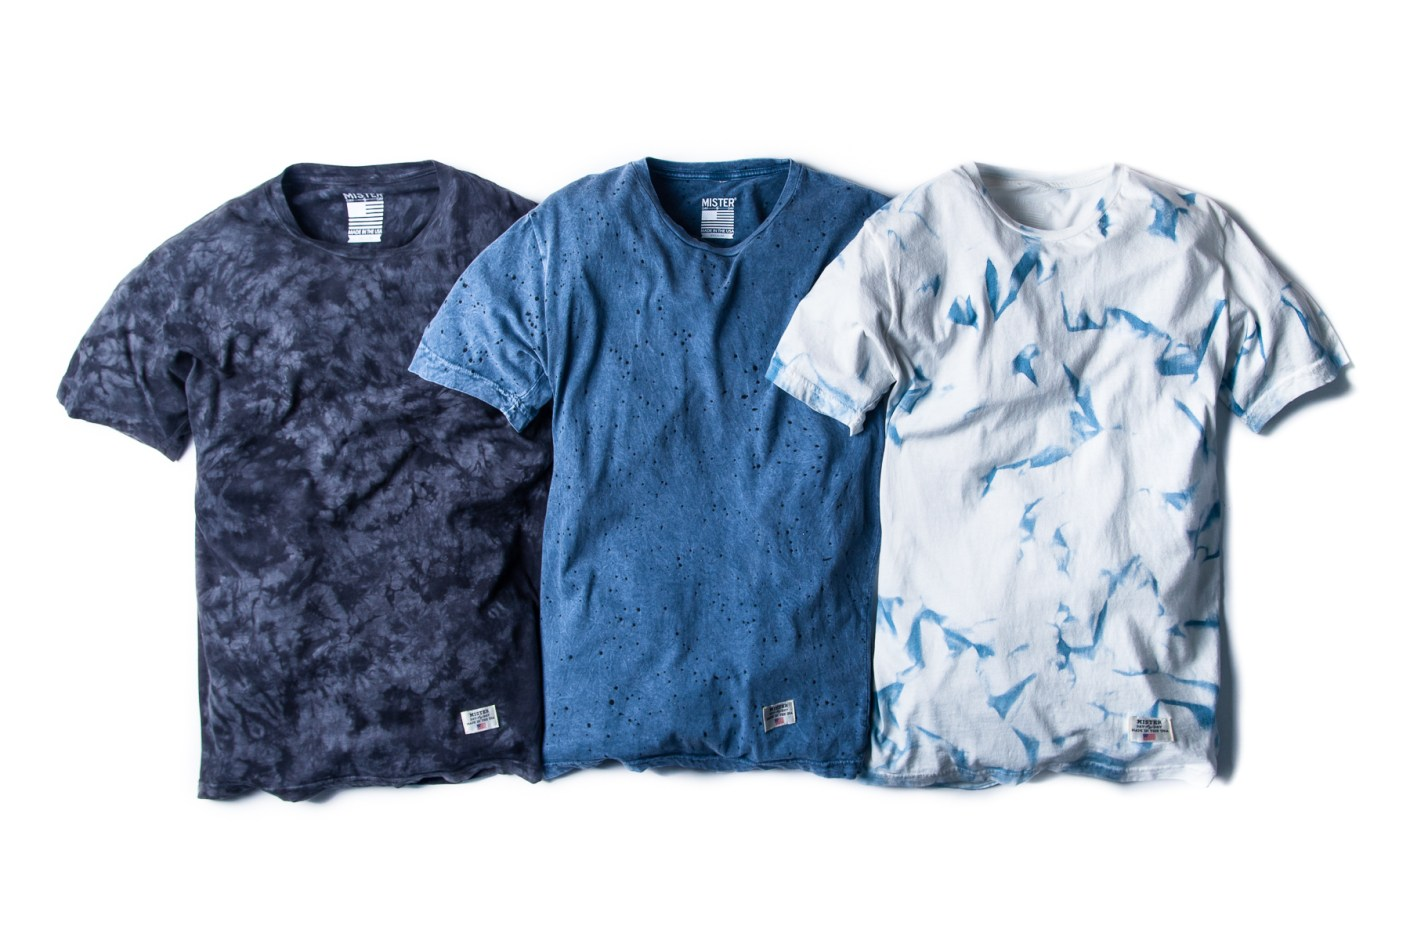 Image of Mister 2014 Patterned T-Shirt Collection